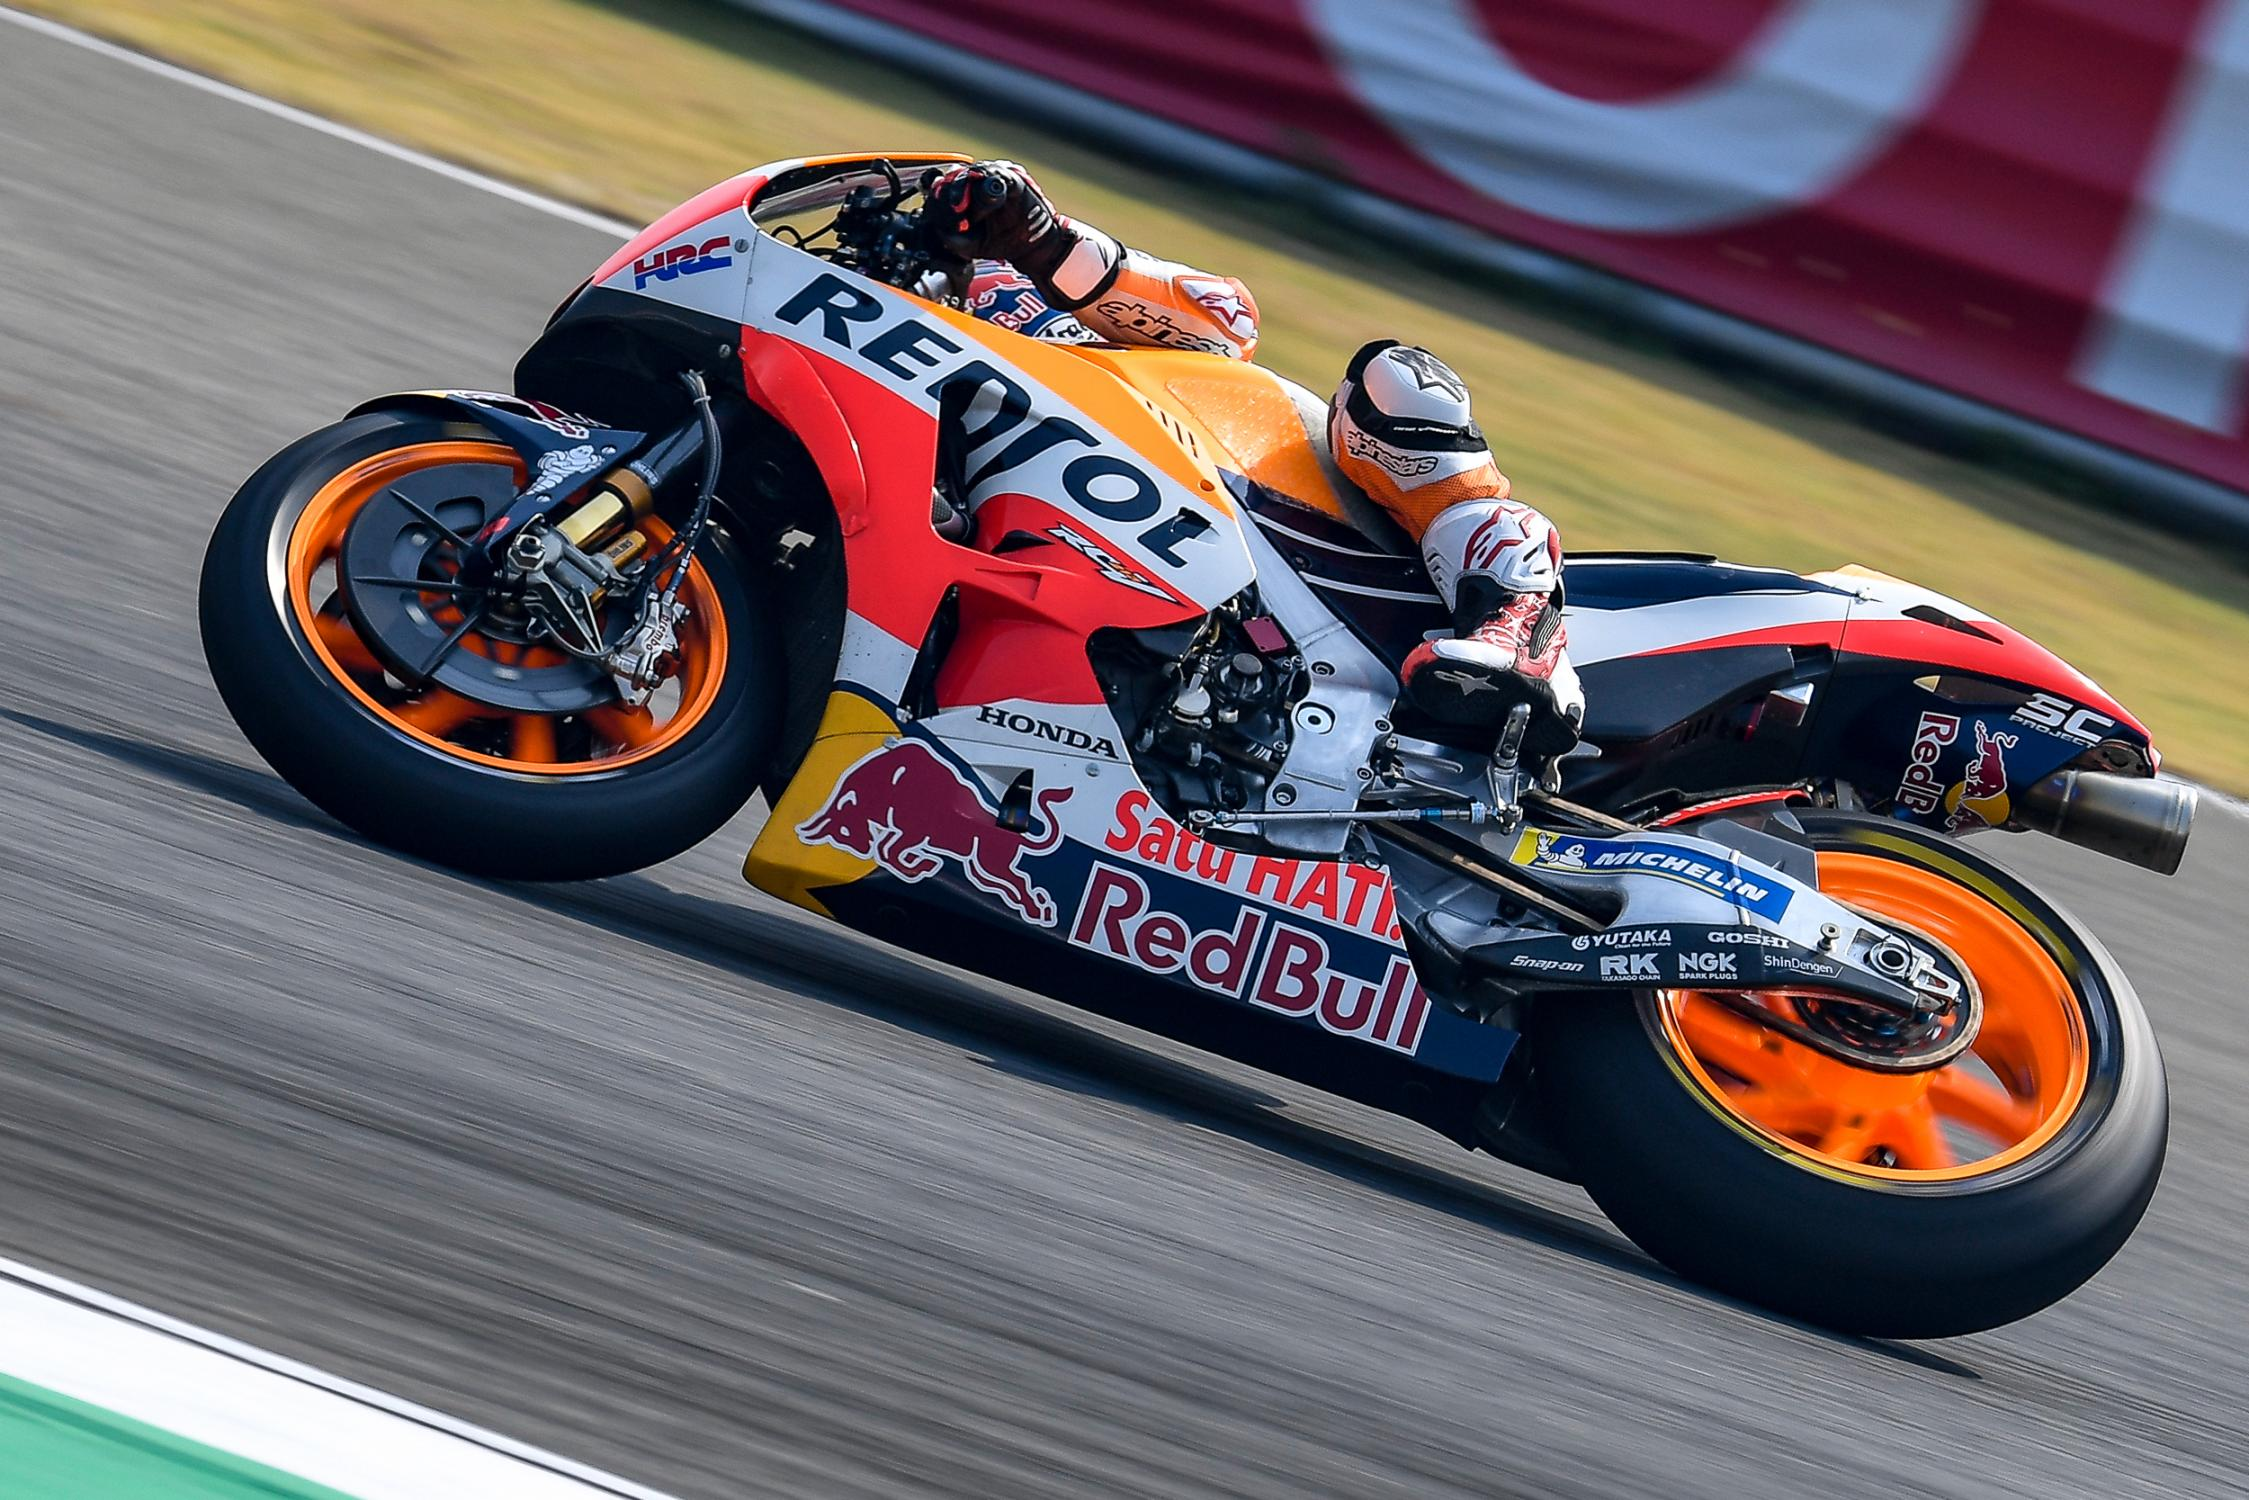 26-dani-pedrosa-esp_ds58704.gallery_full_top_fullscreen.jpg